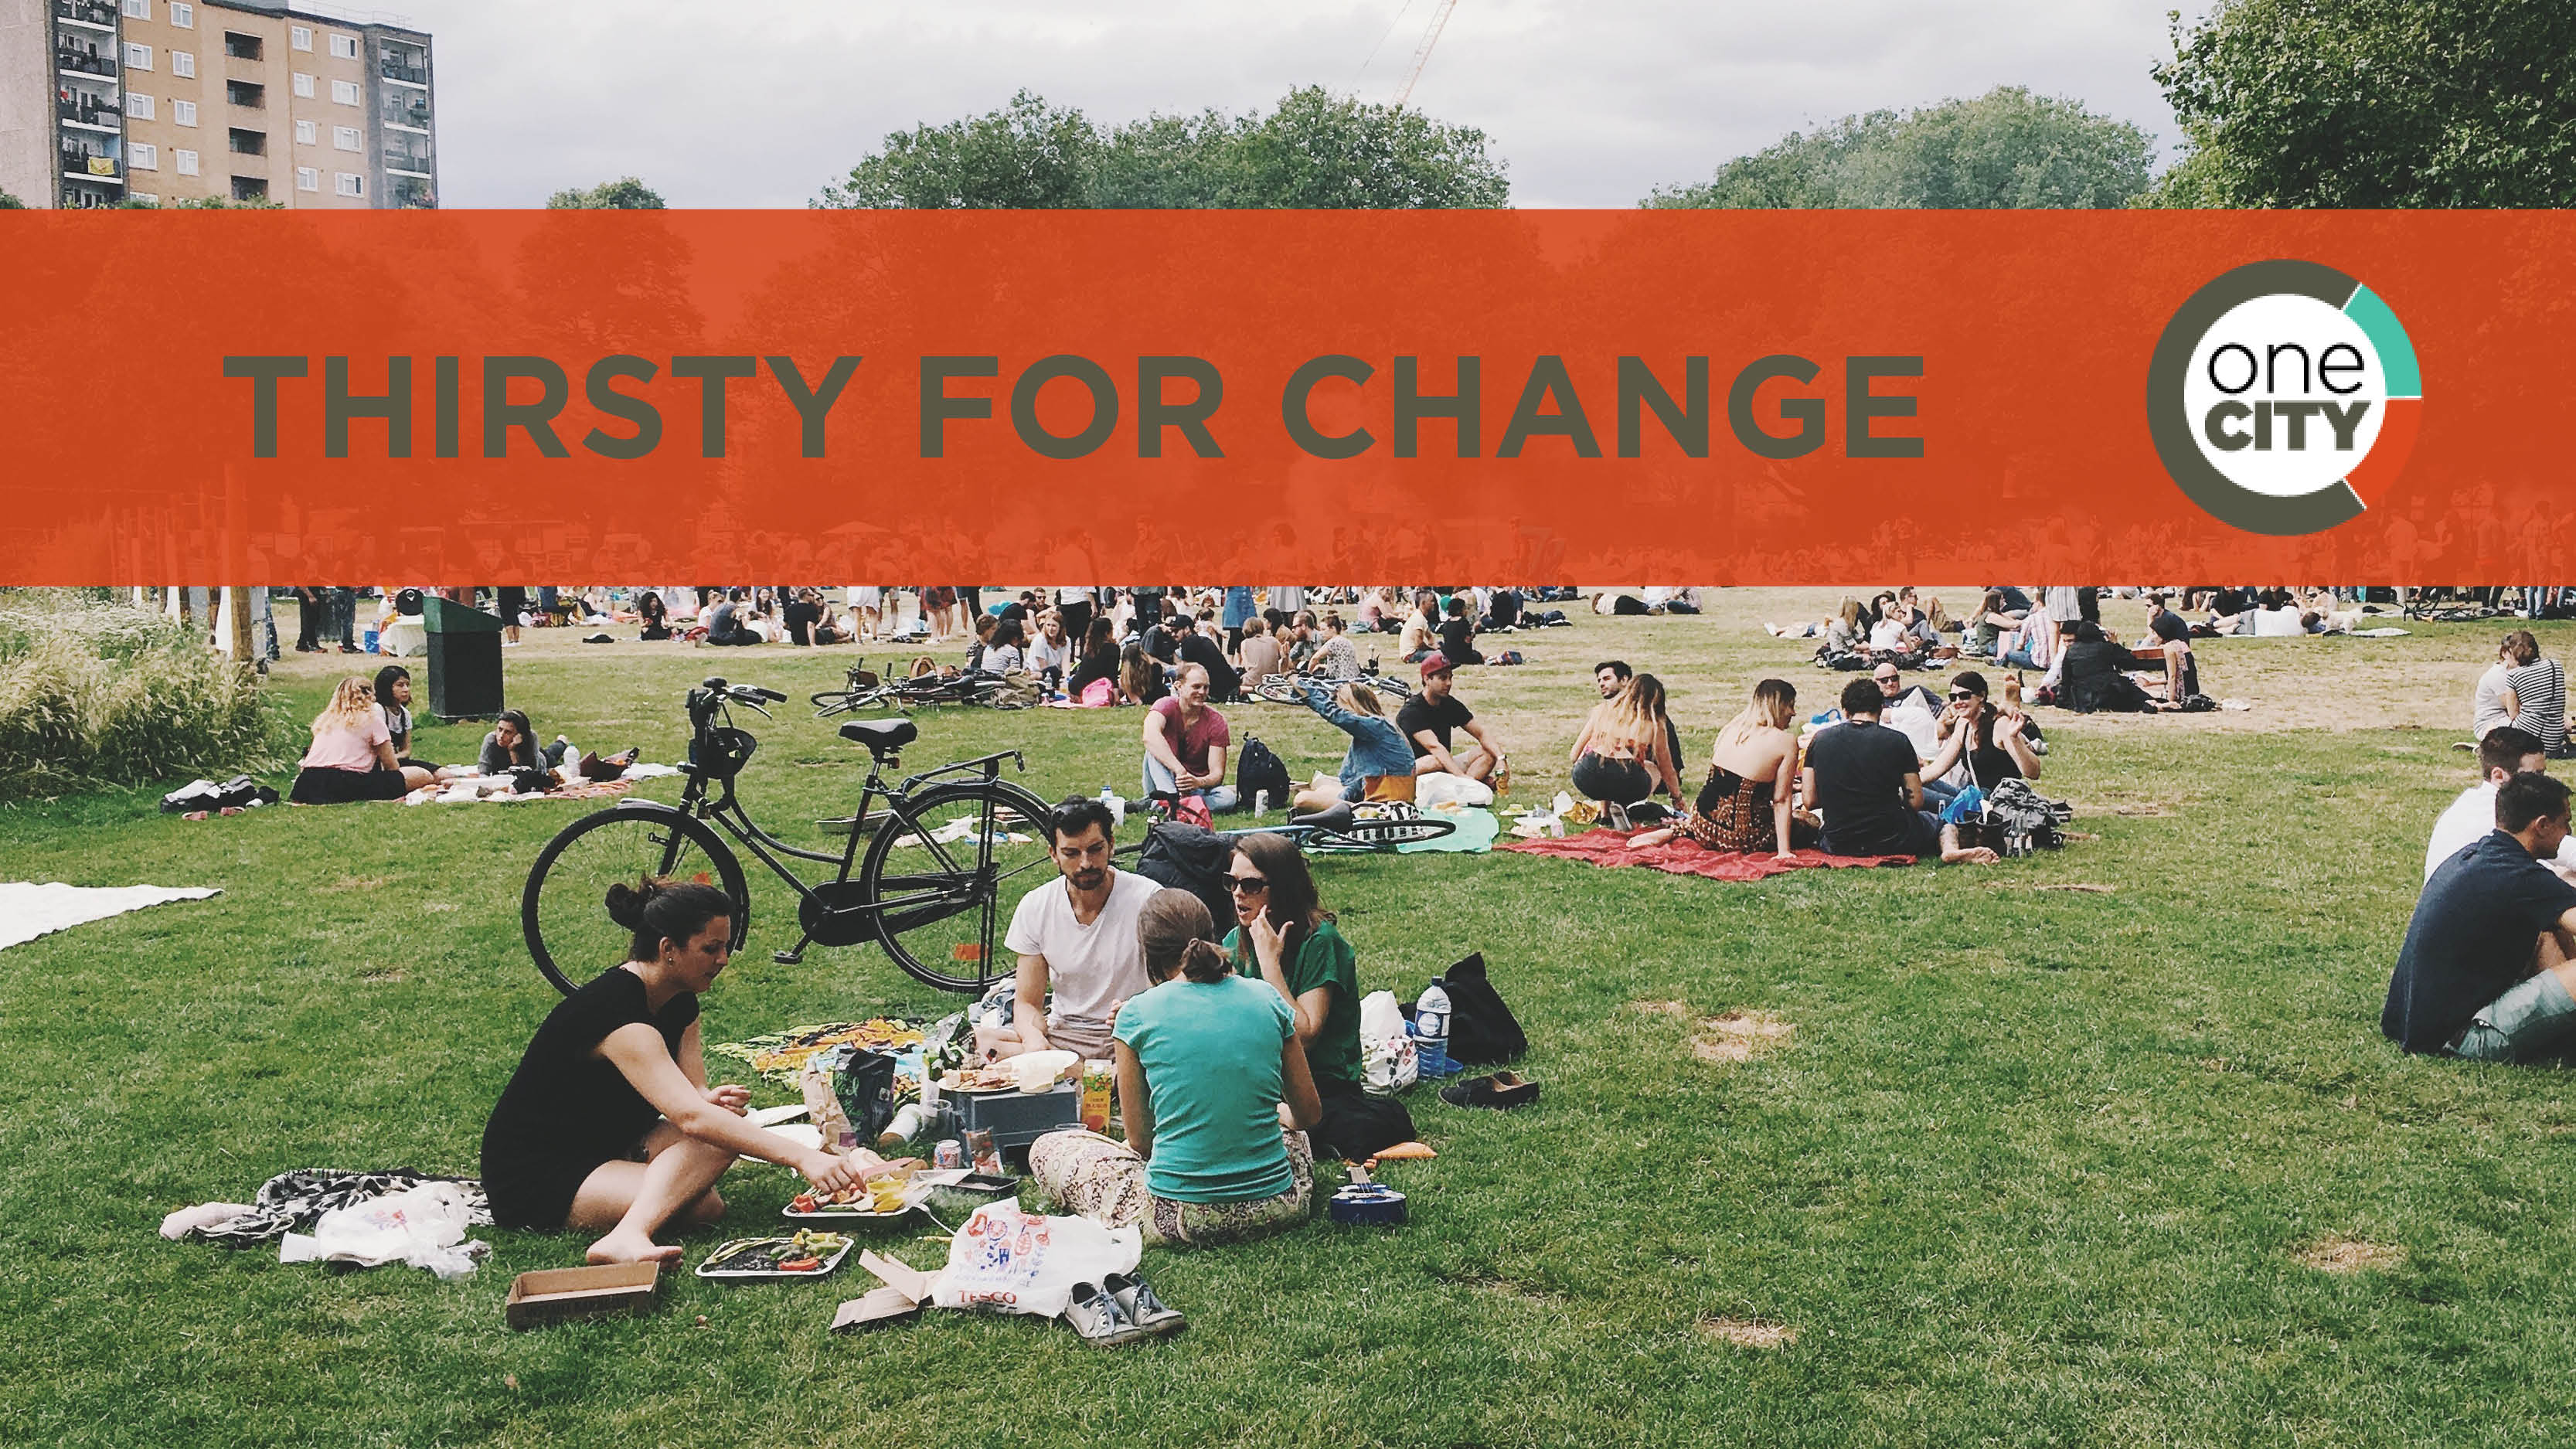 groups of people in parks with the text thirsty for change